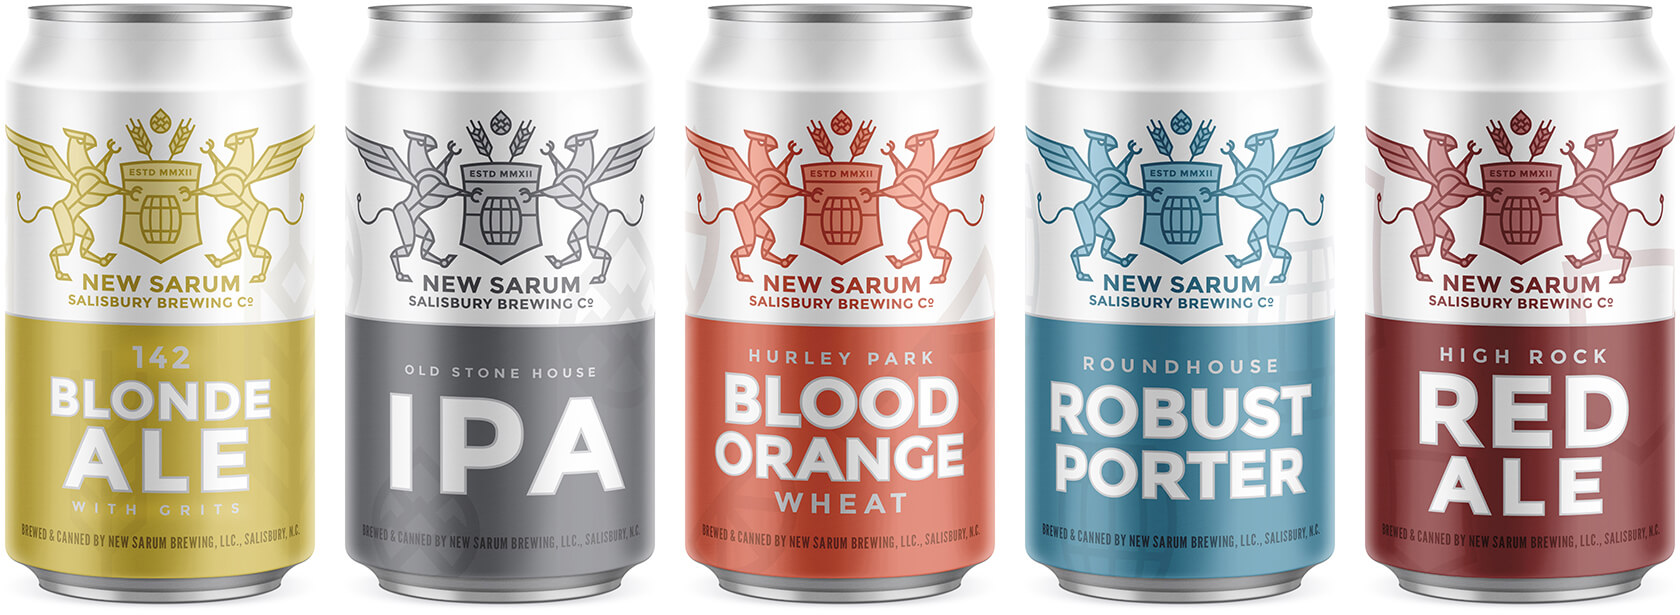 new-sarum-cans